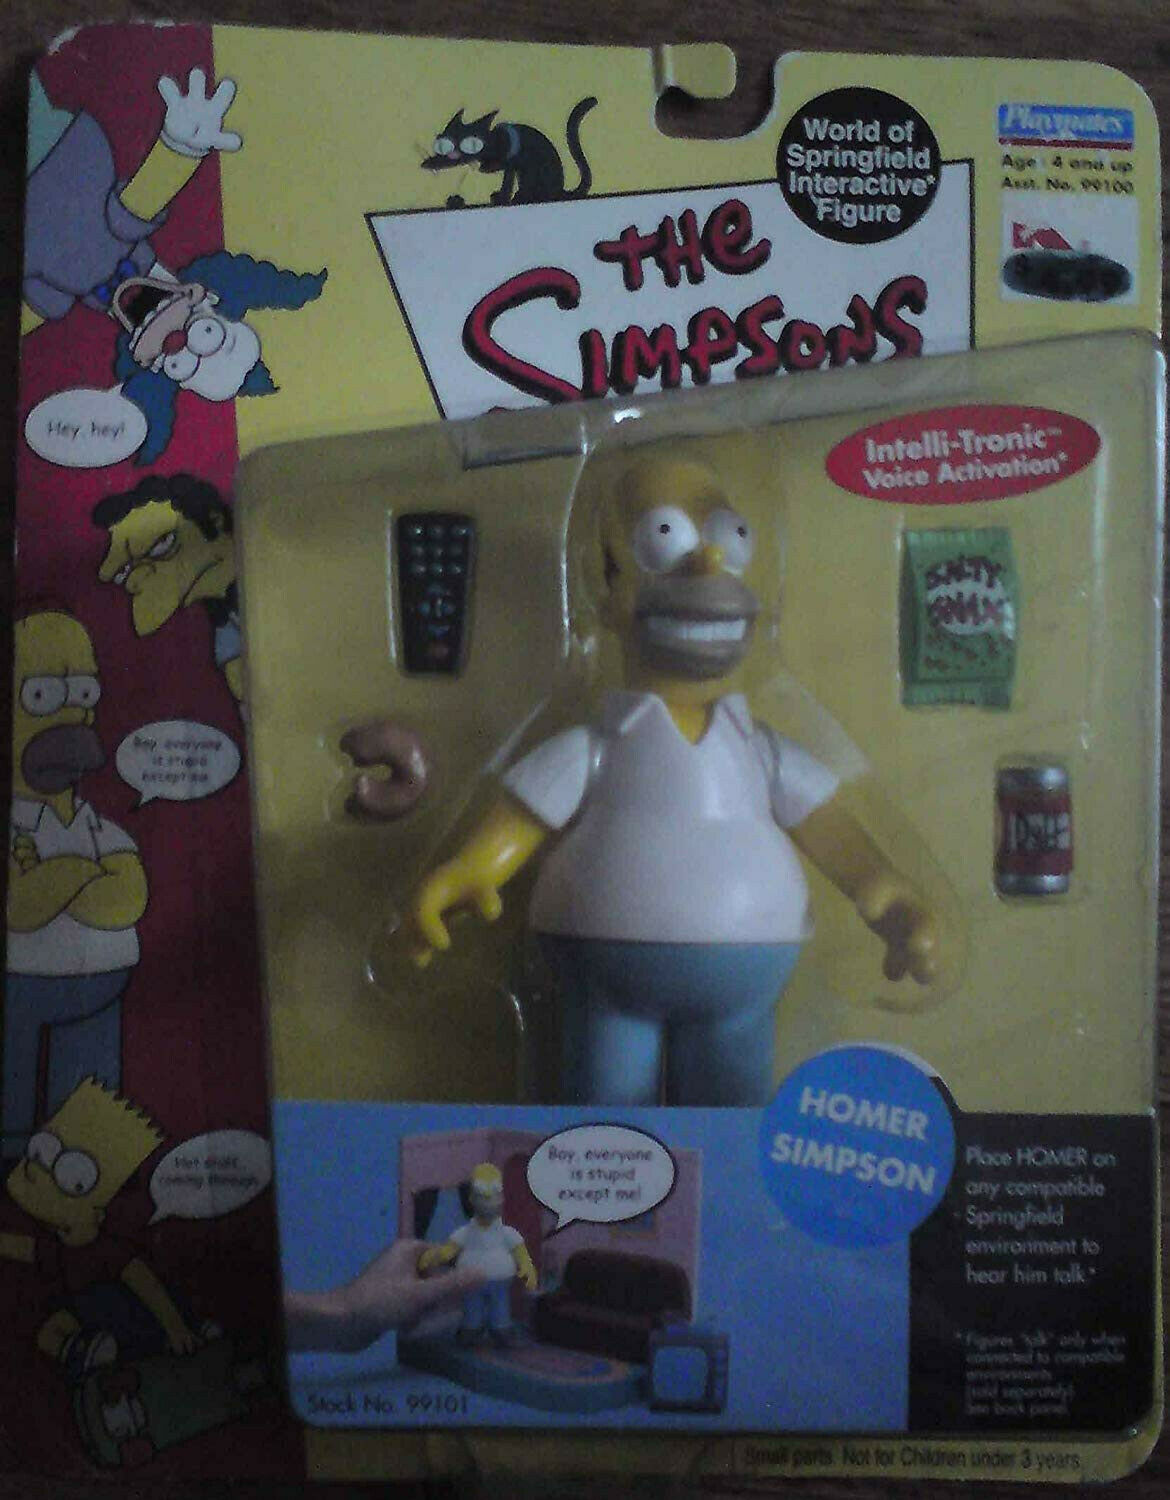 Vintage playmates 1st edition homer simpsons with voice activation extreme rare